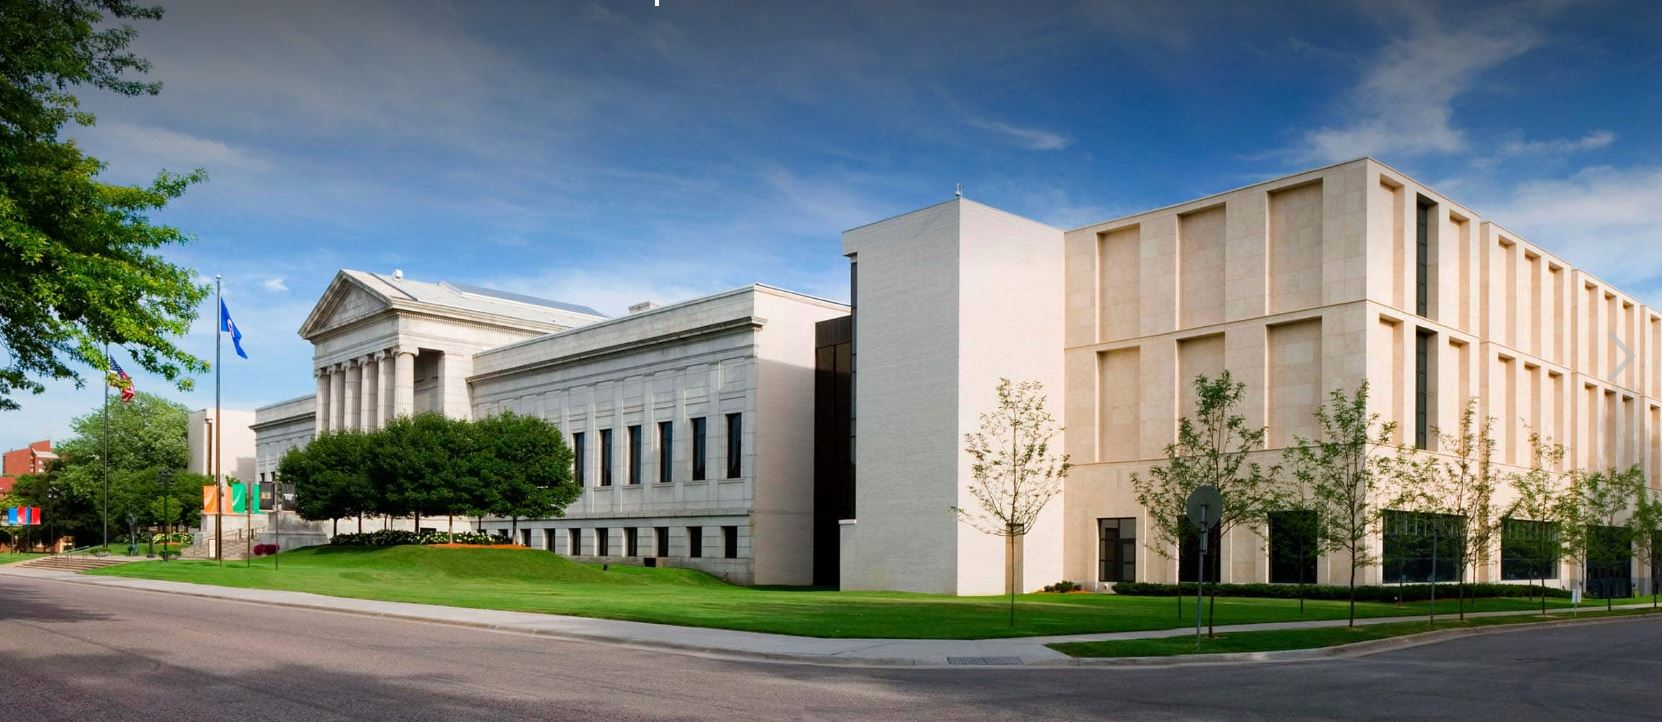 15 Most Important Projects by Michael Graves - Minneapolis Institute of Art (Mia), USA